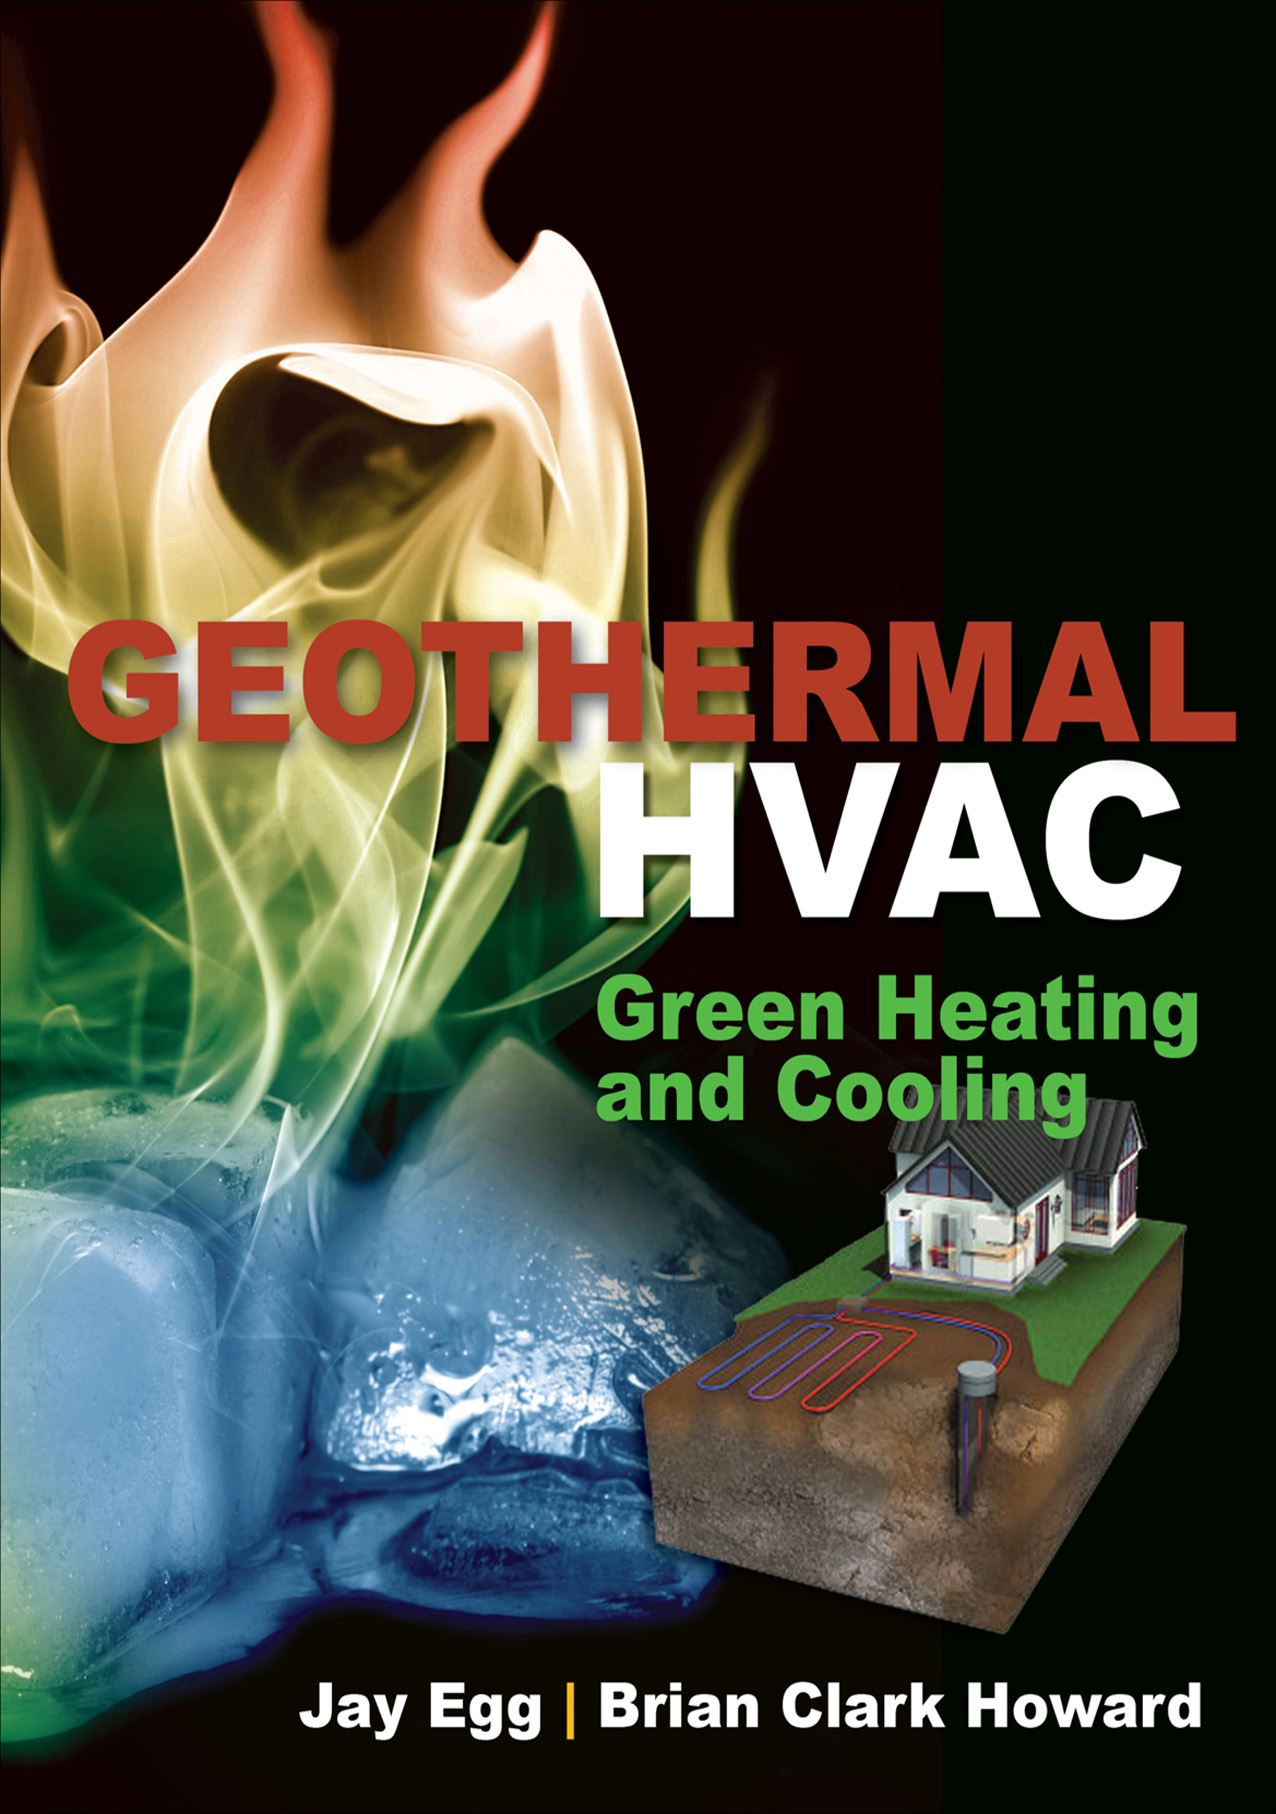 Geothermal HVAC